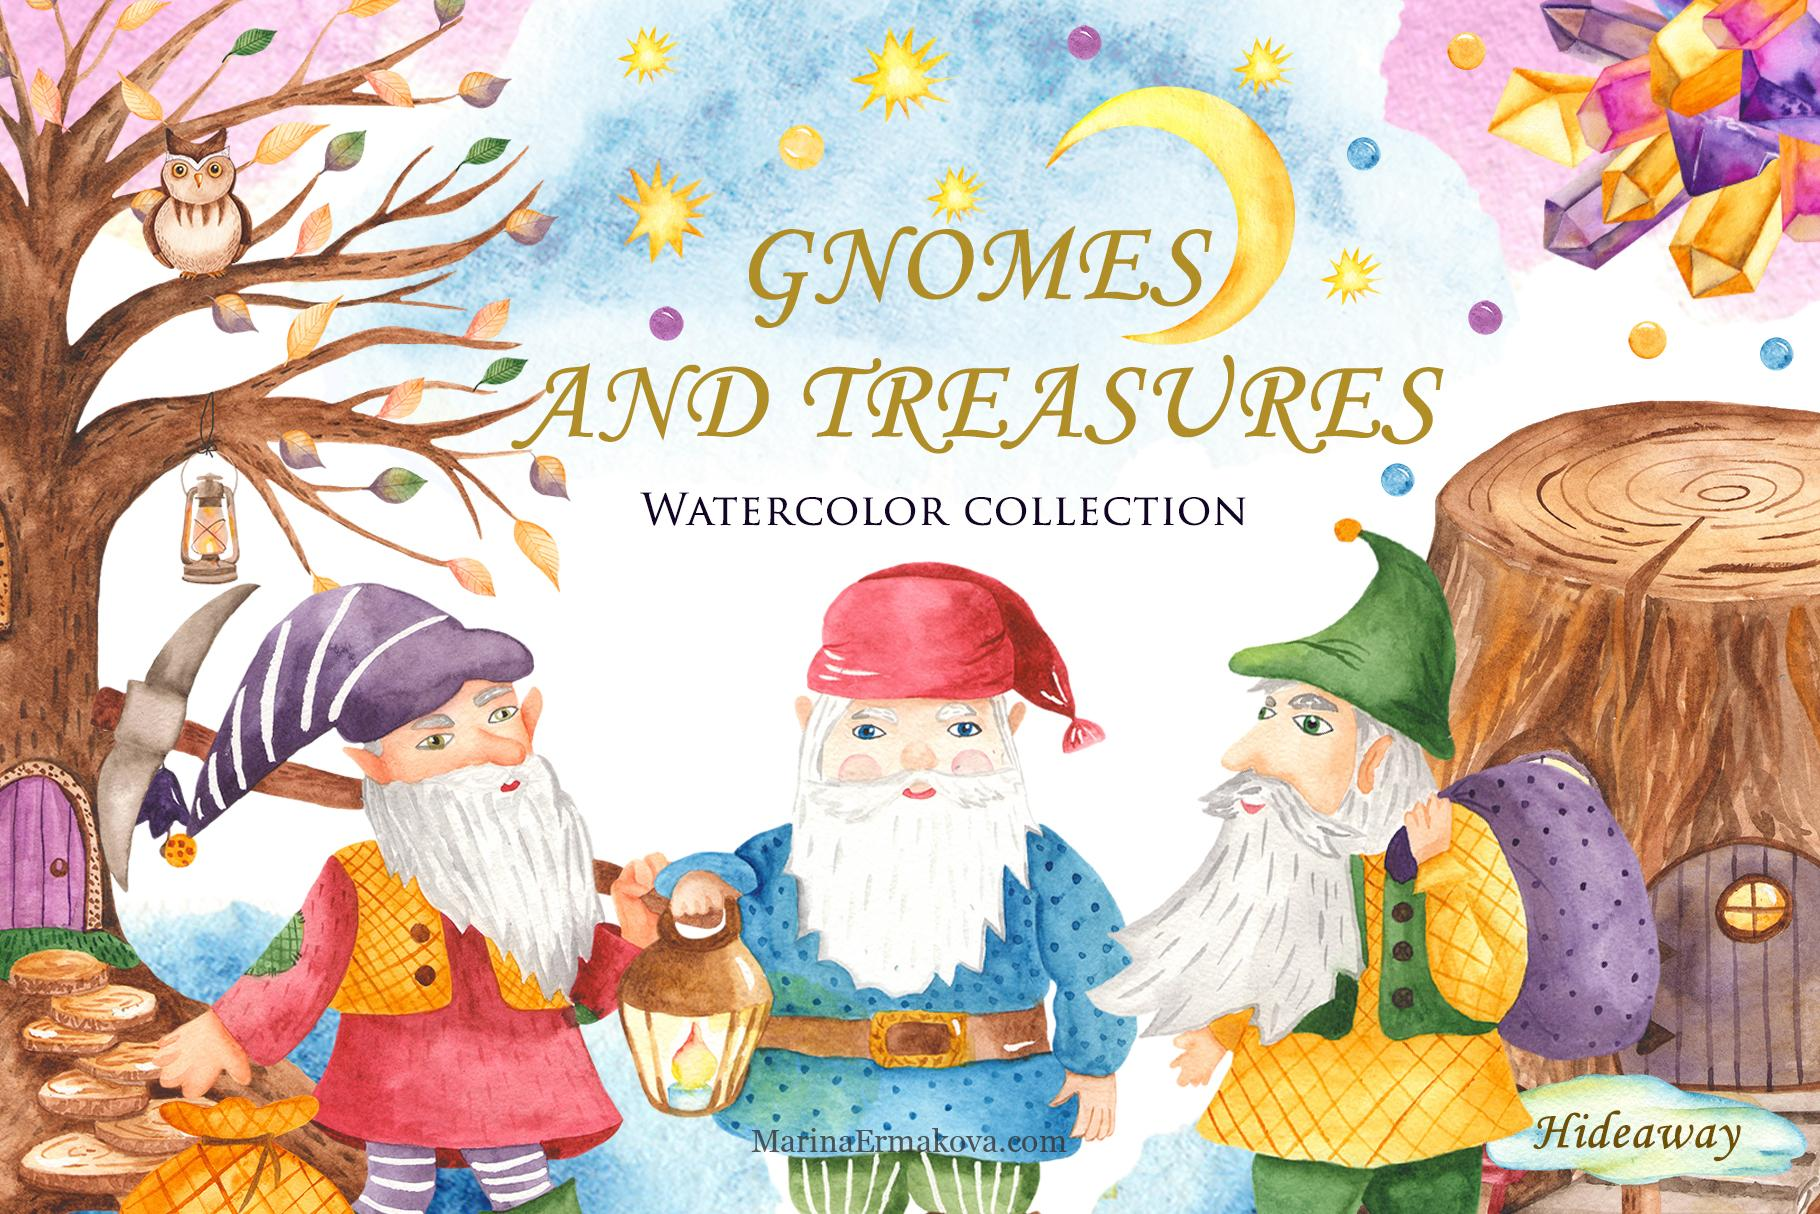 Gnomes and treasures watercolor collection clipart